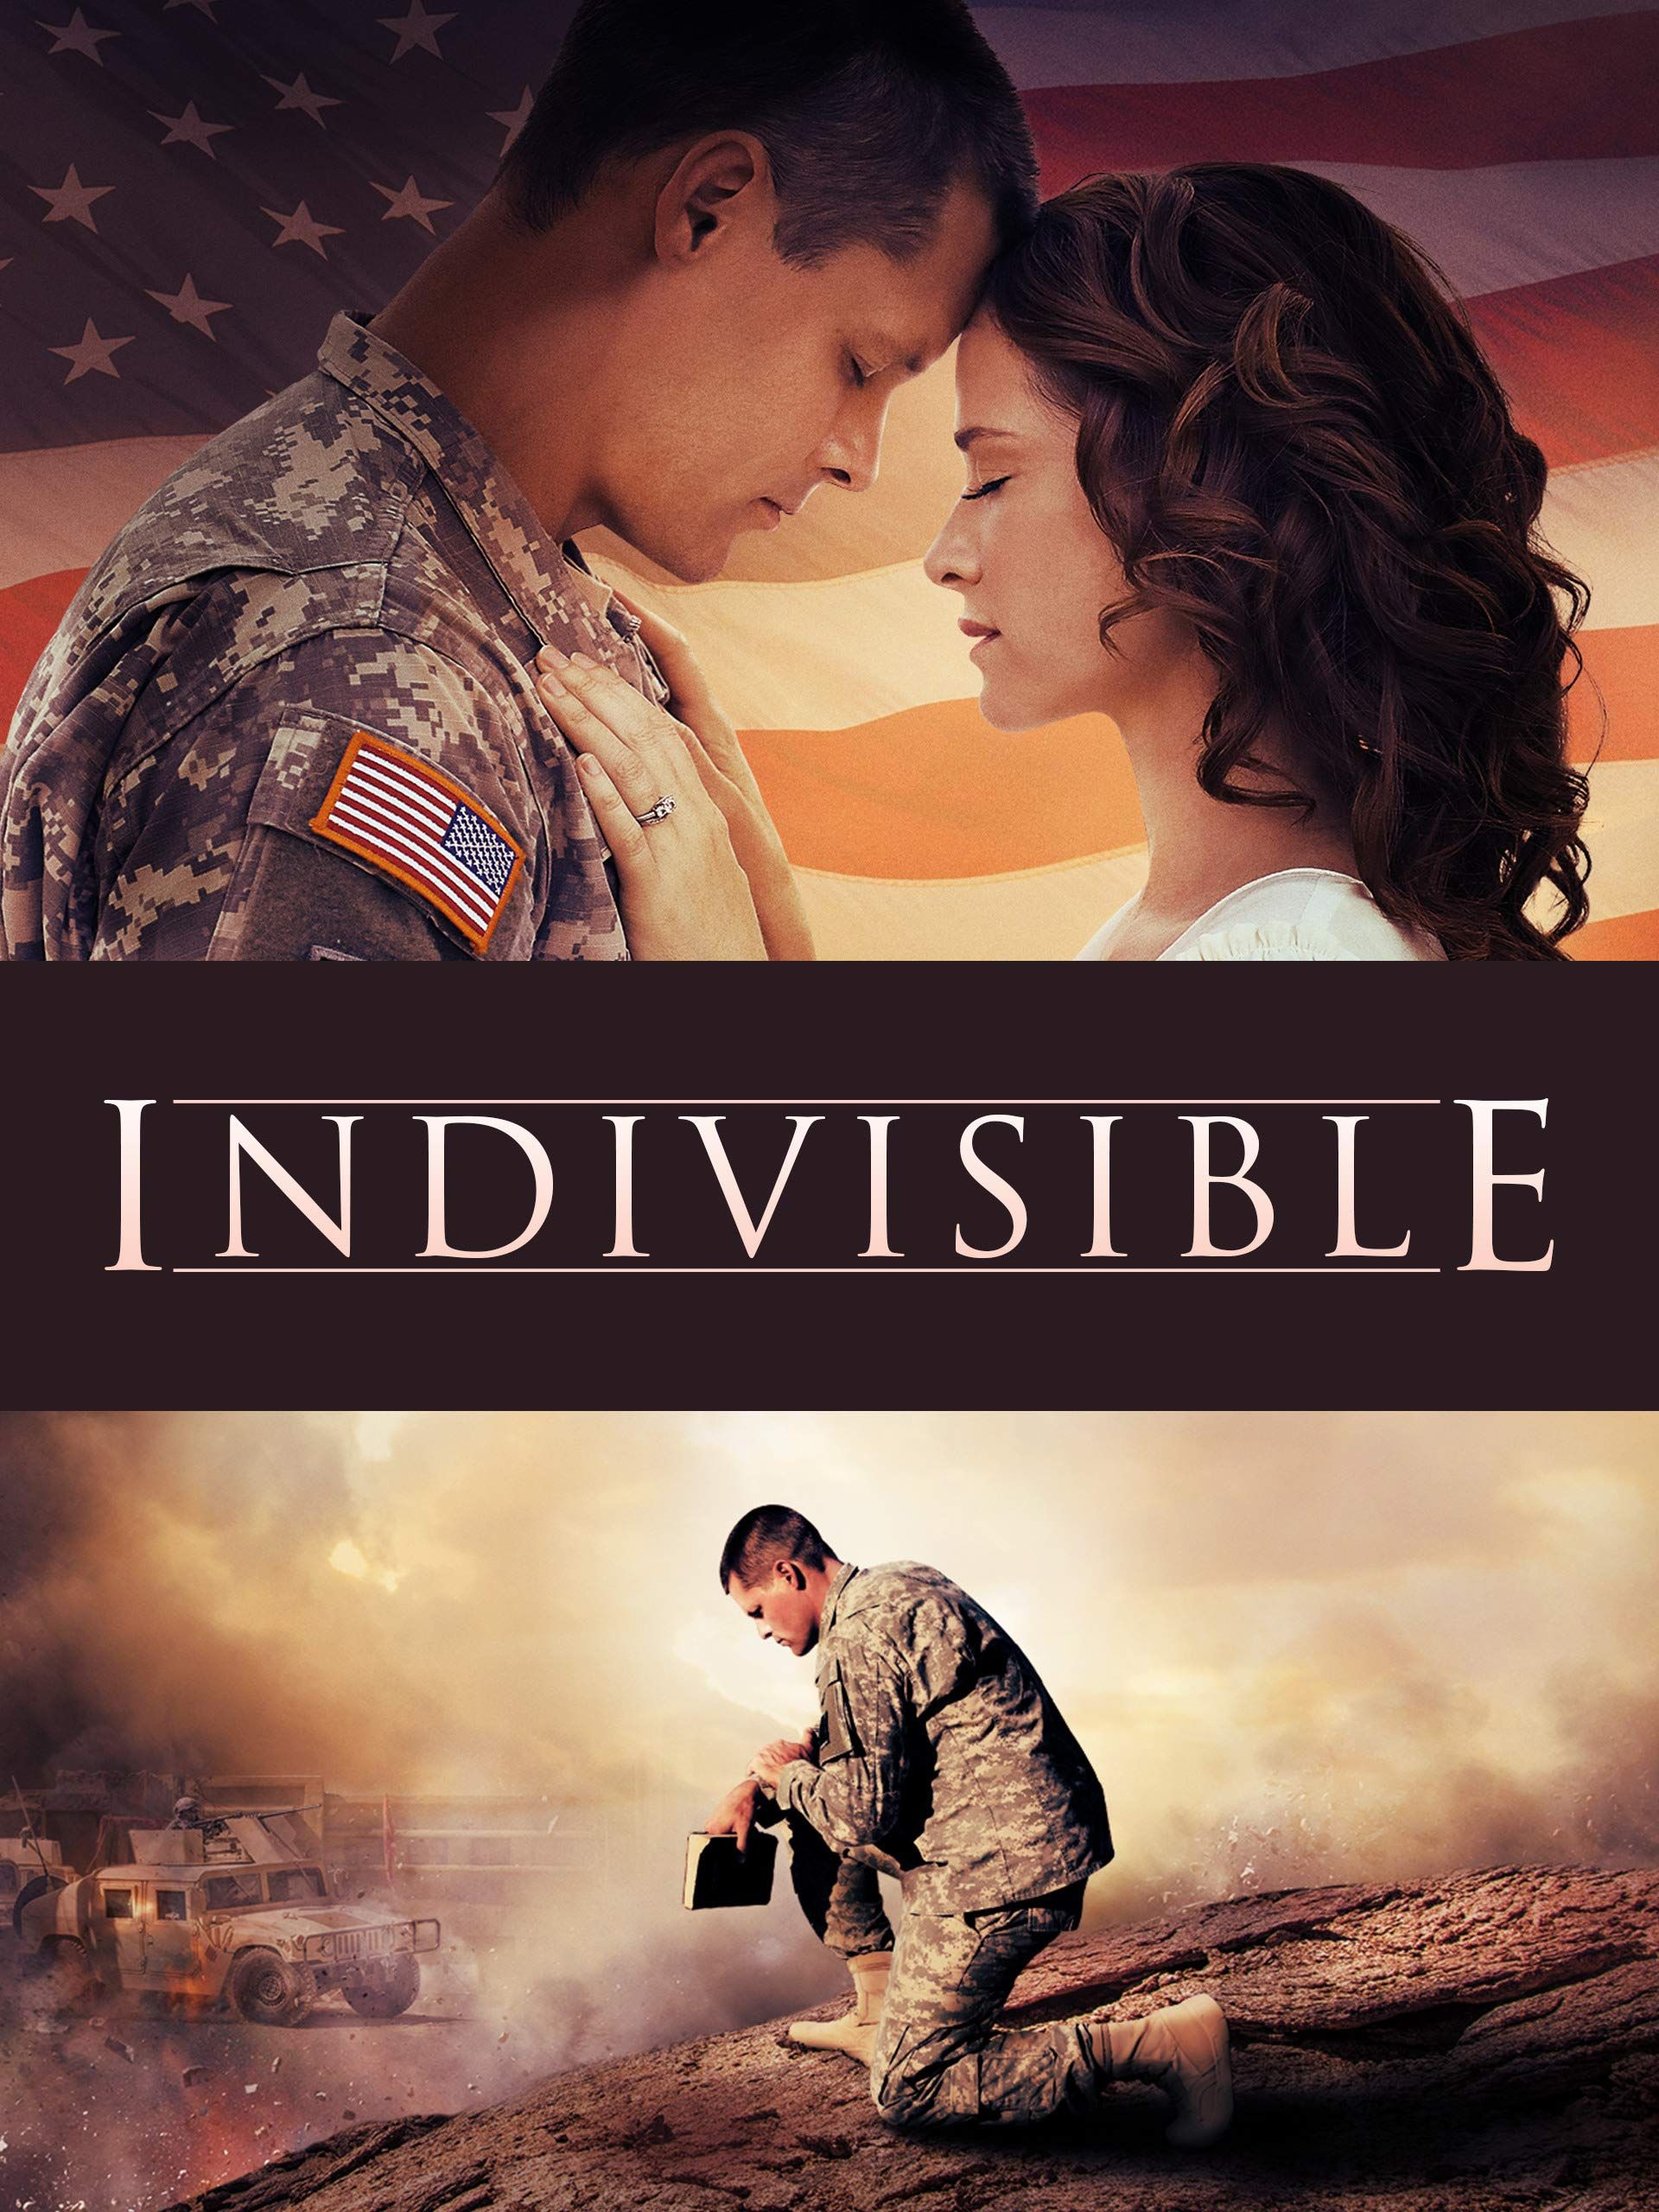 Indivisible is the extraordinary true story of Army